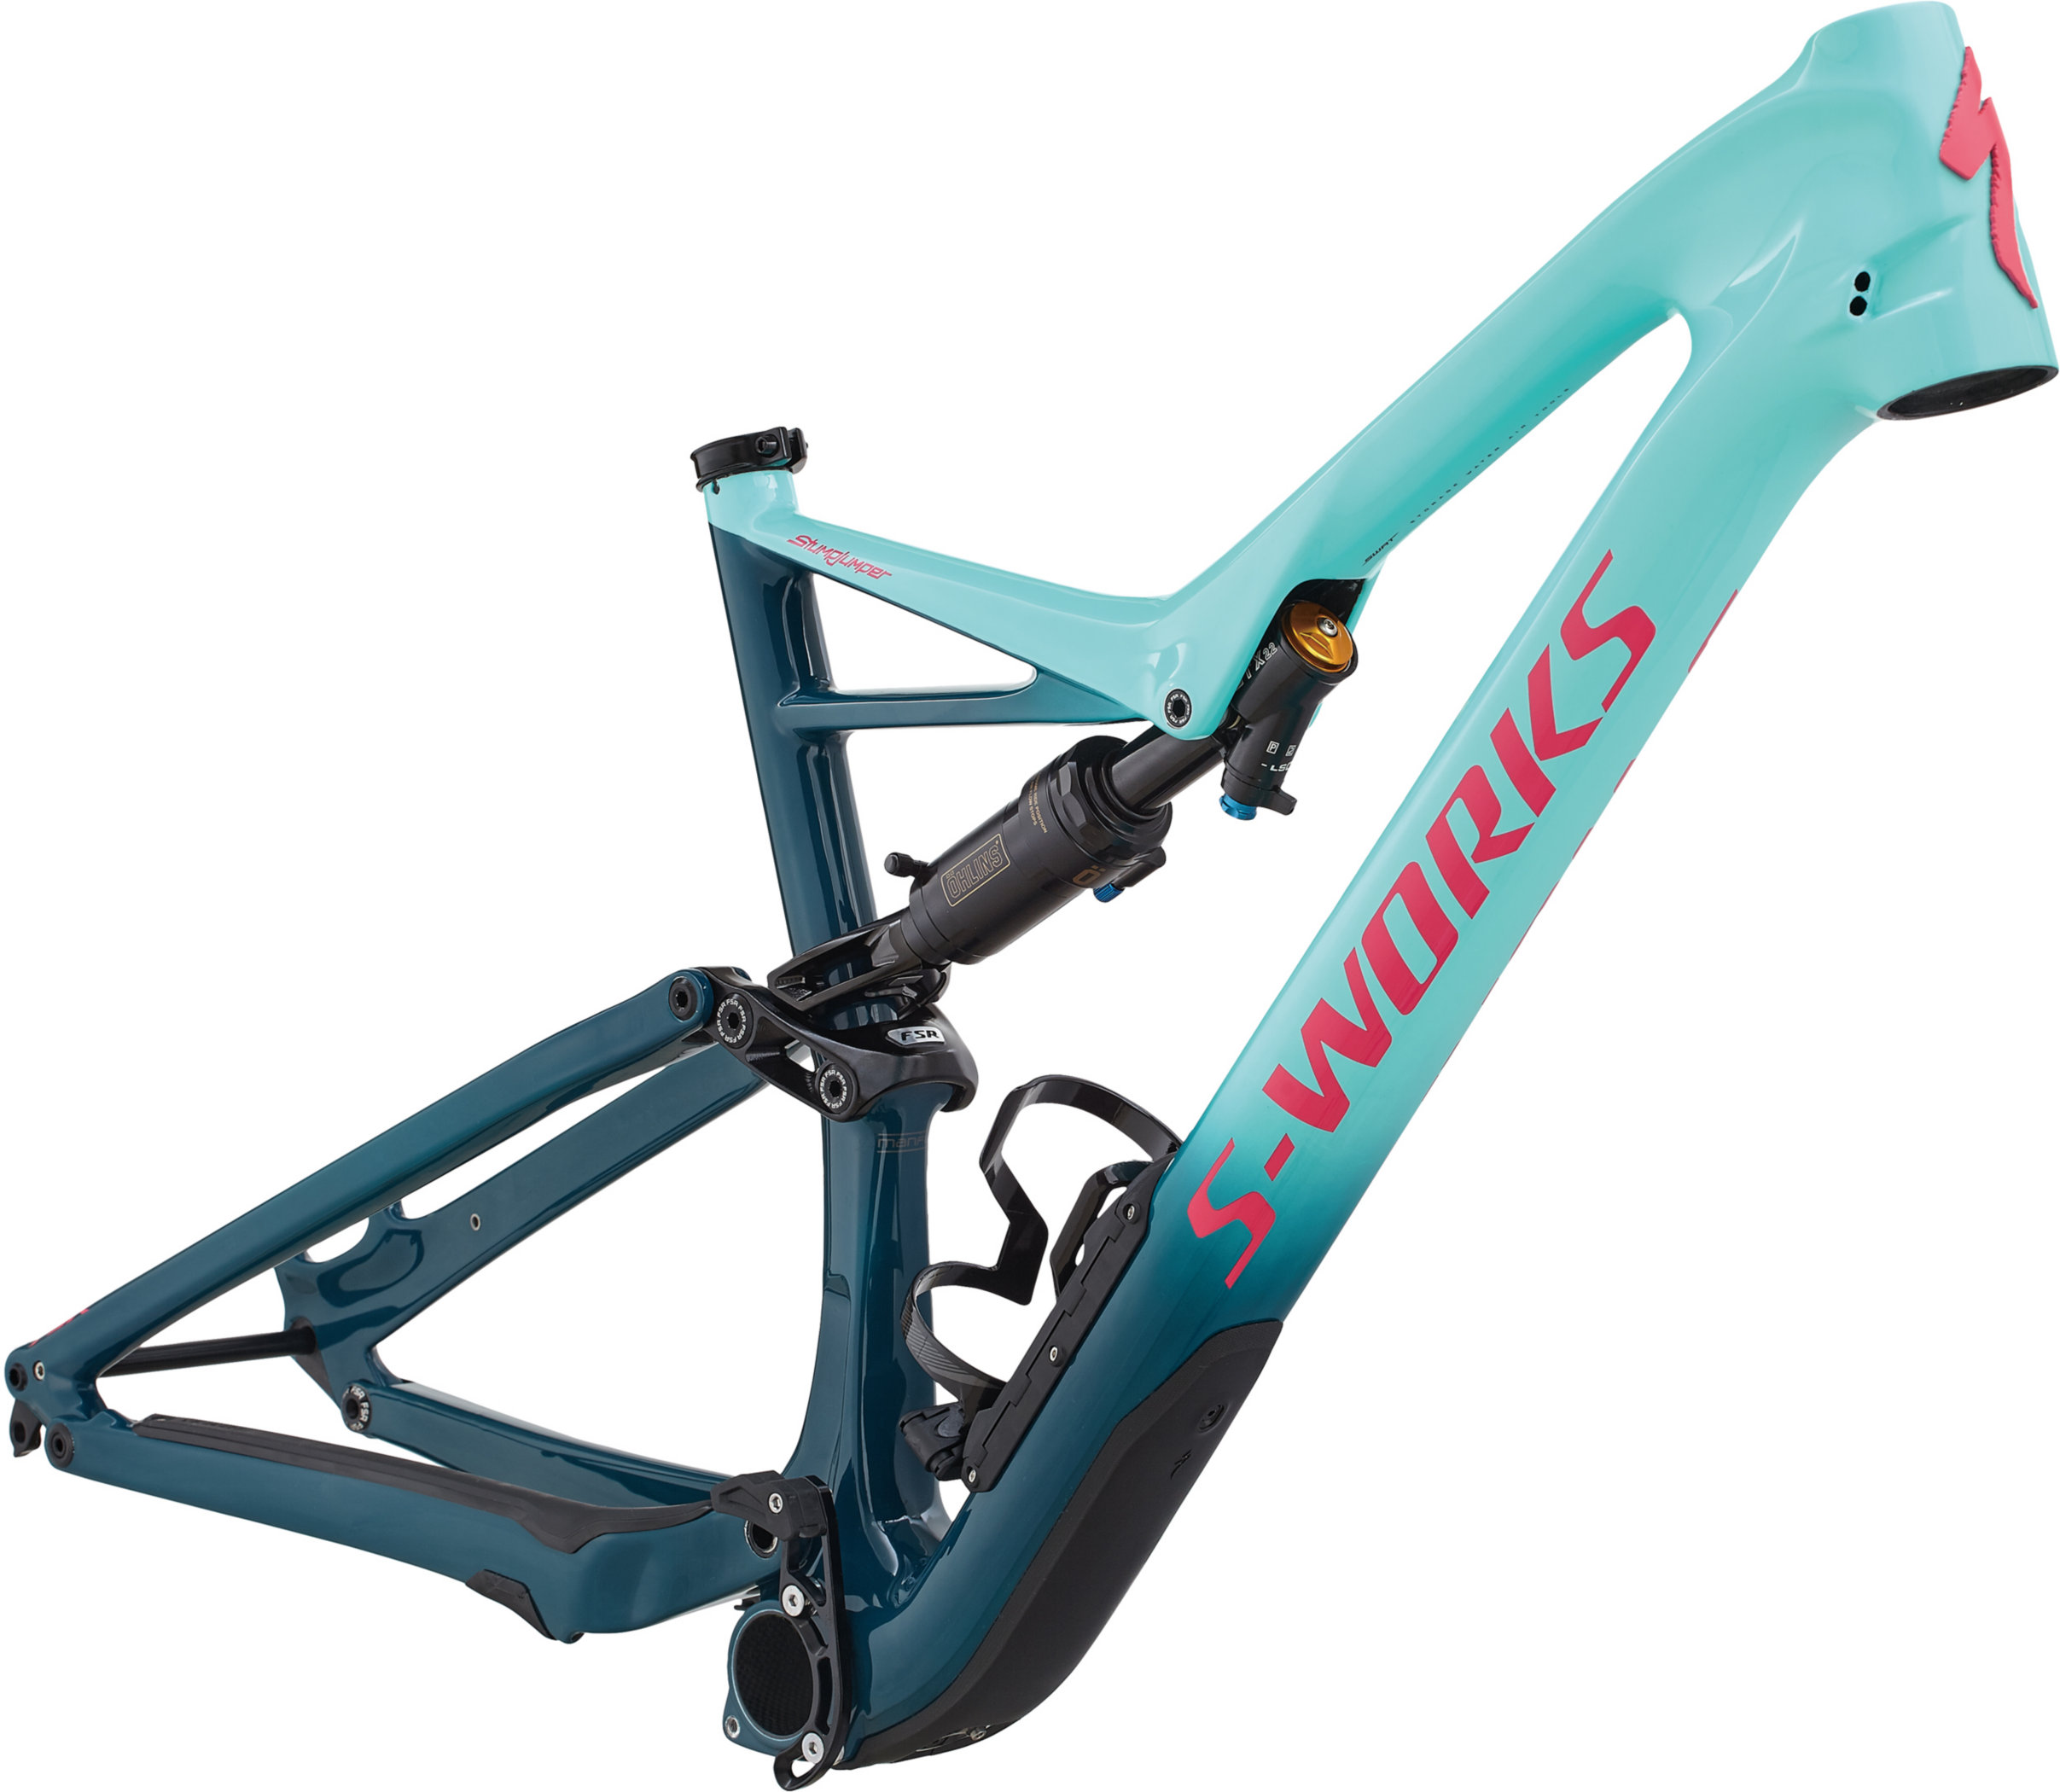 Specialized S-Works Stumpjumper Carbon 29/6Fattie Frame HERITAGE GLOSS LIGHT TURQUOISE / TROPICAL TEAL / ACID PINK CLEAN L - Bike Zone